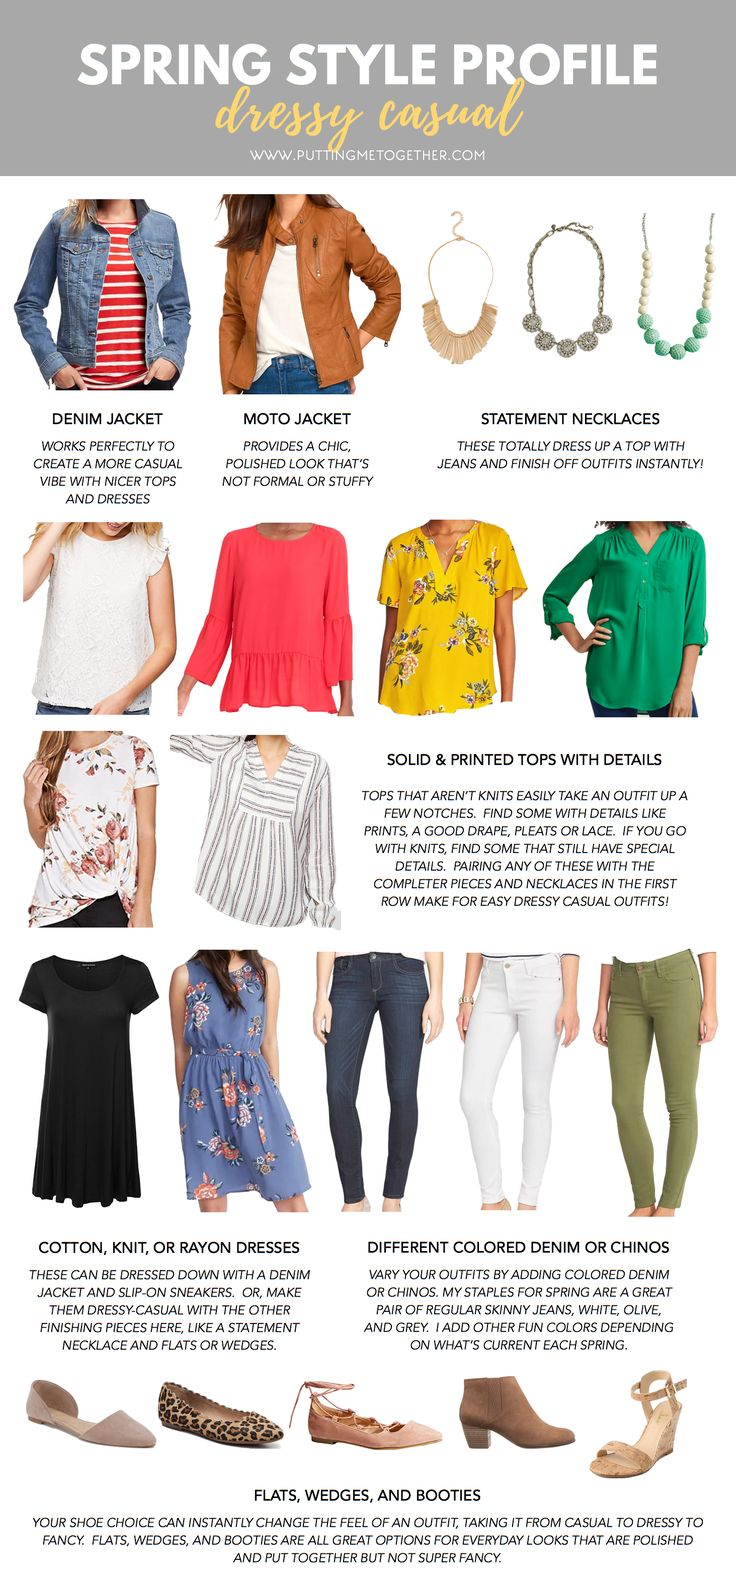 Spring Style Profile Dressy Casual Putting Me Together